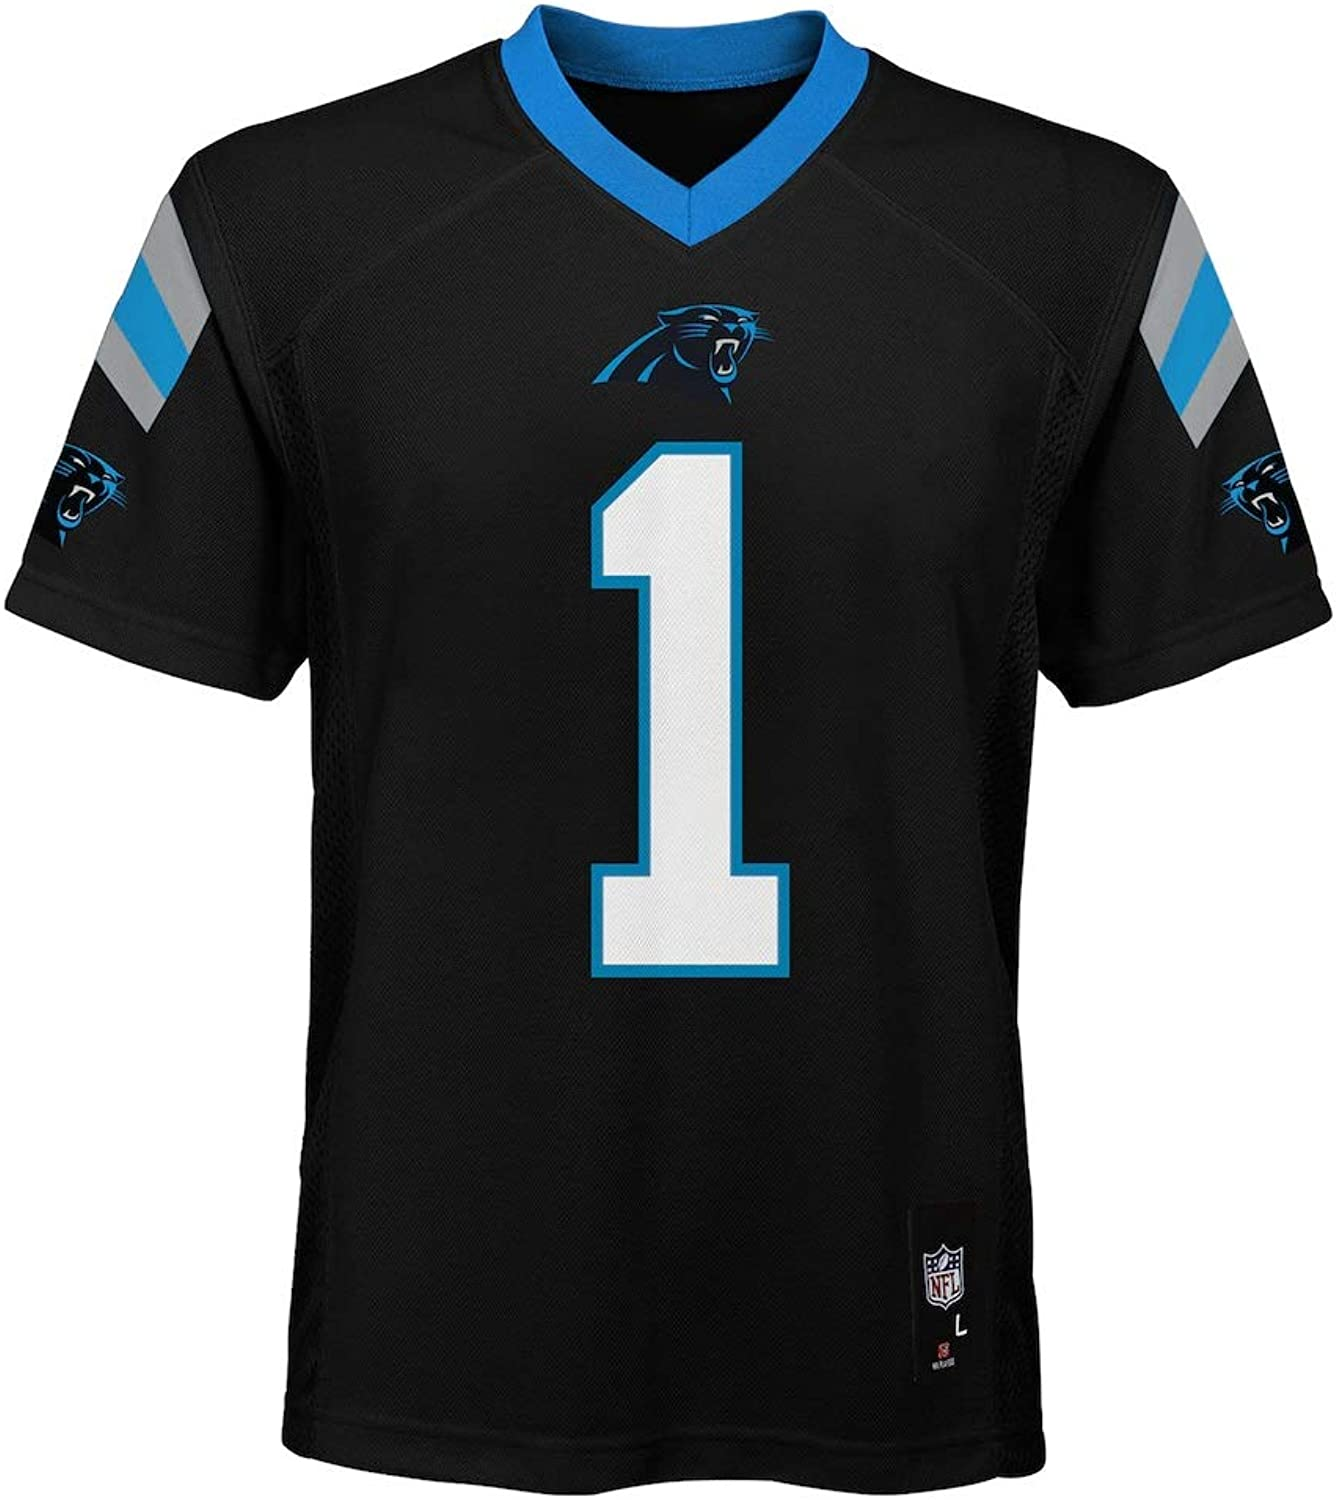 Outerstuff Cam Newton Carolina Panthers  1 NFL Youth MidTier Jersey Black